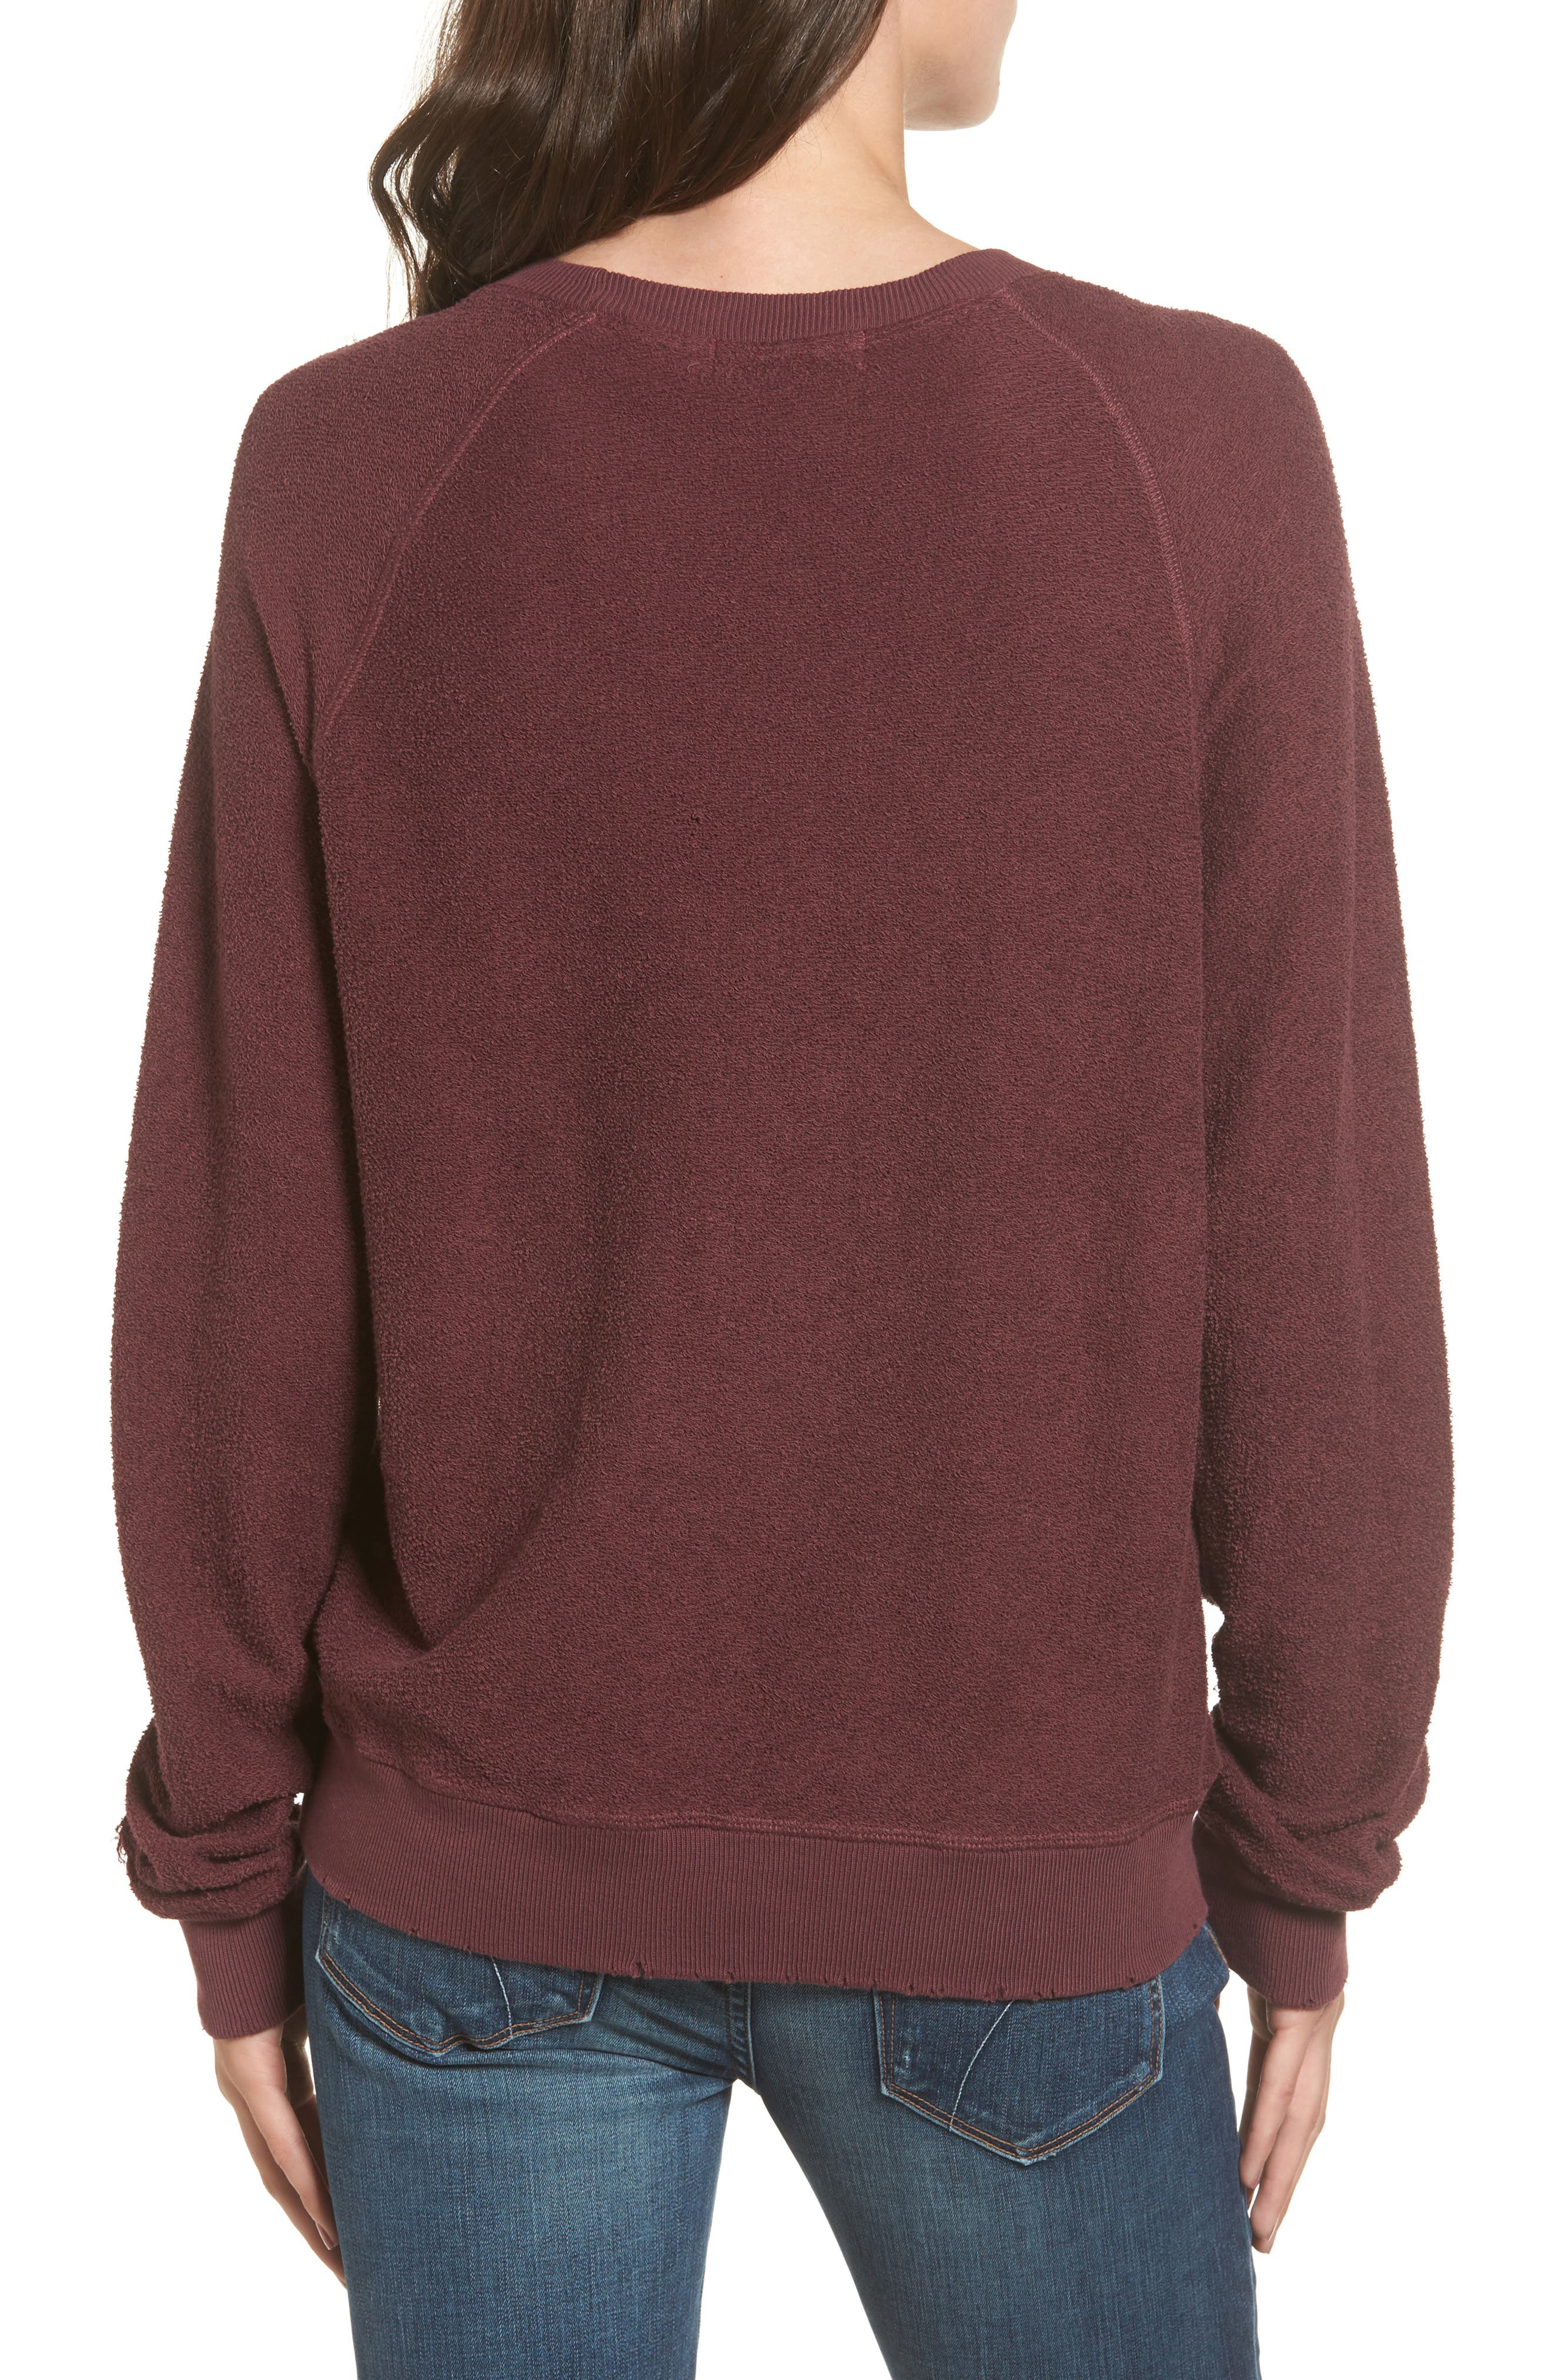 Holden Reverse Distressed Sweatshirt,                             Alternate thumbnail 2, color,                             930